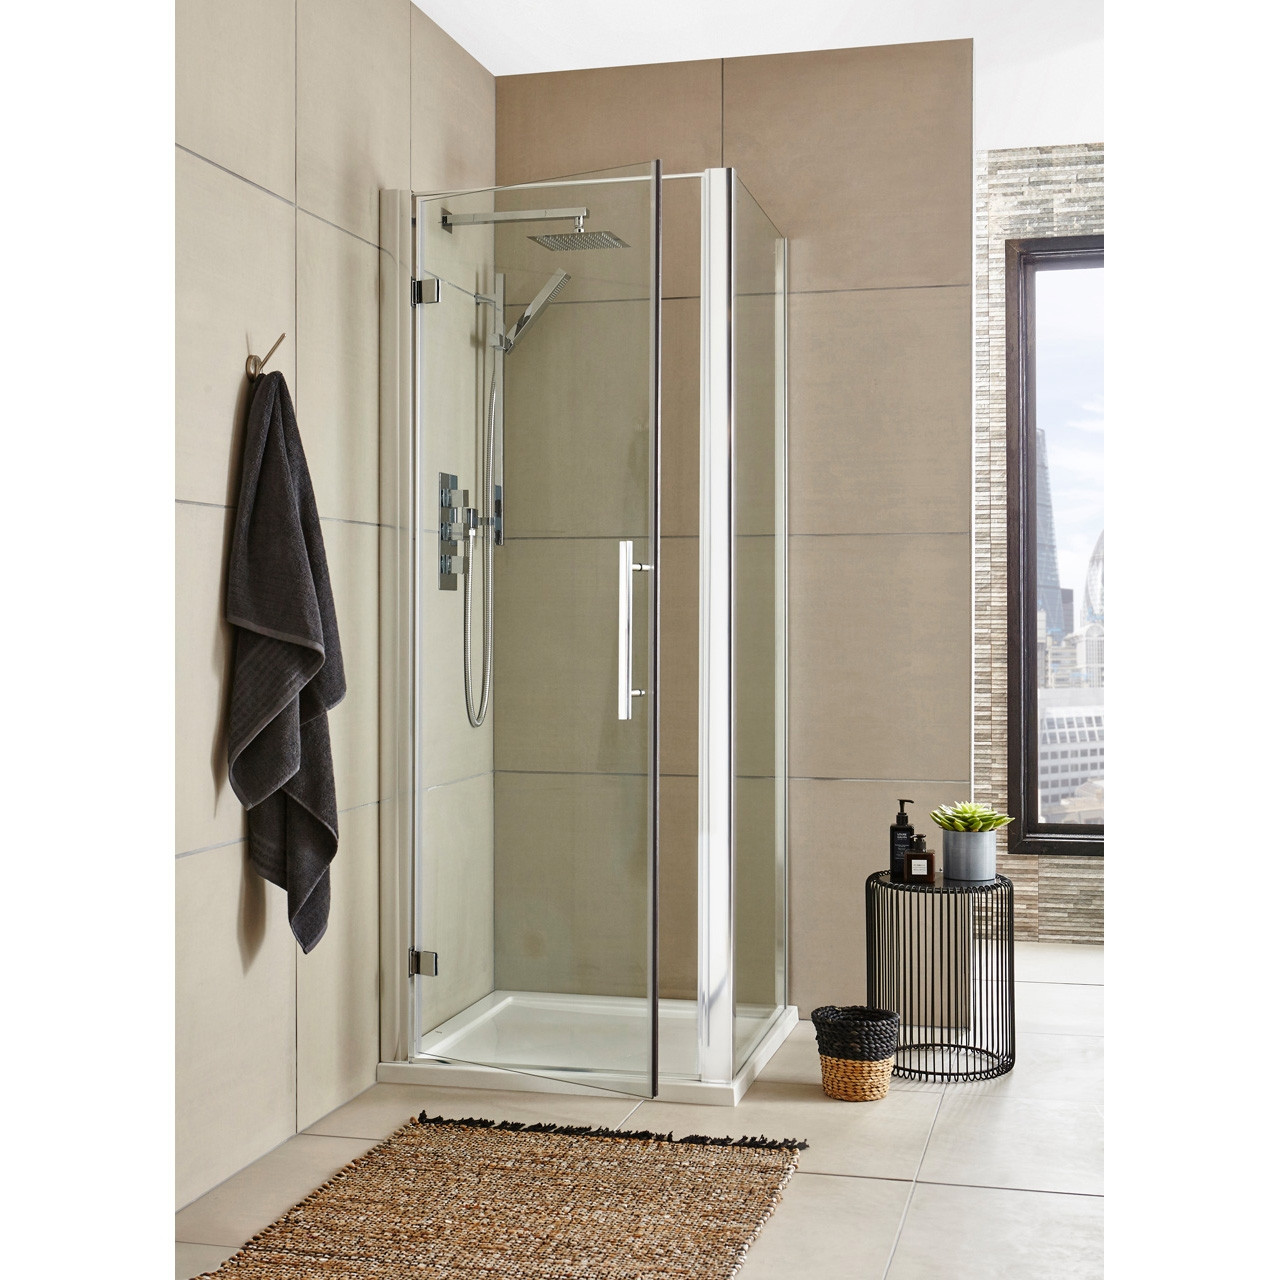 Premier 760mm Hinged Door 8mm Thick - MH76-E8